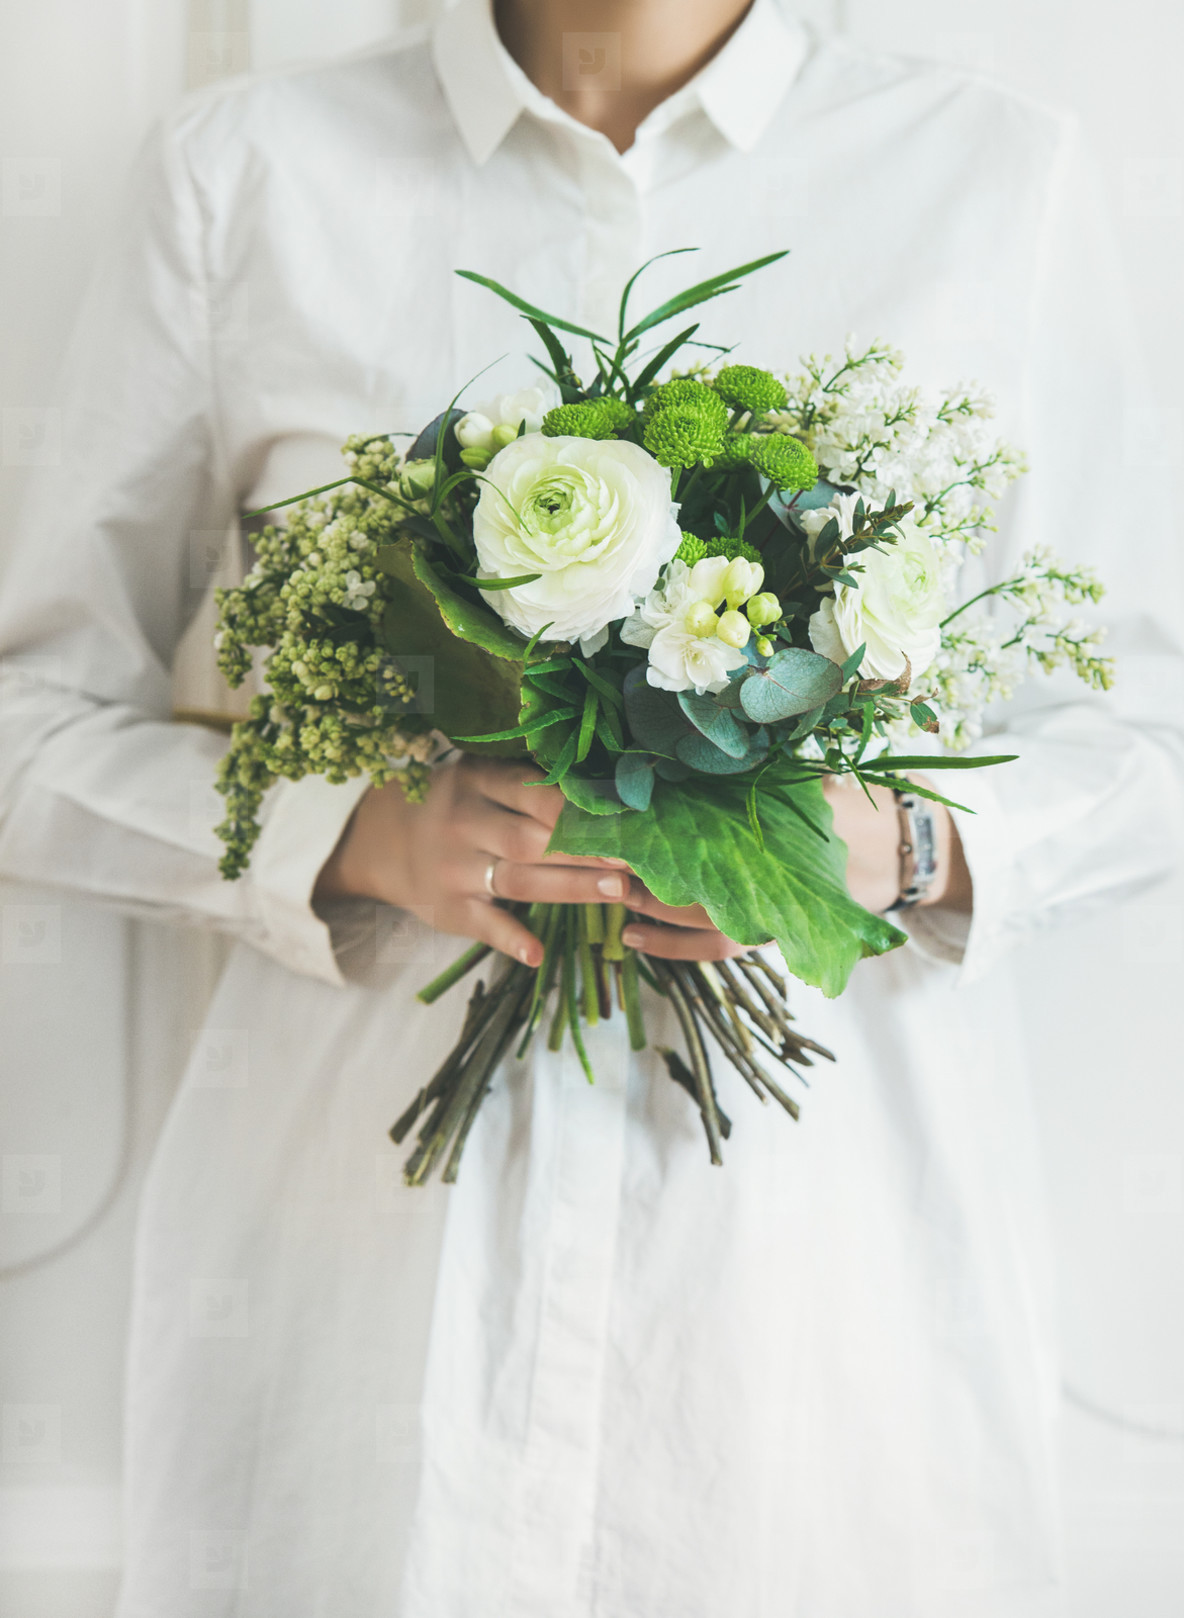 Photos Young Woman Wearing White Clothes Holding Bouquet Flower